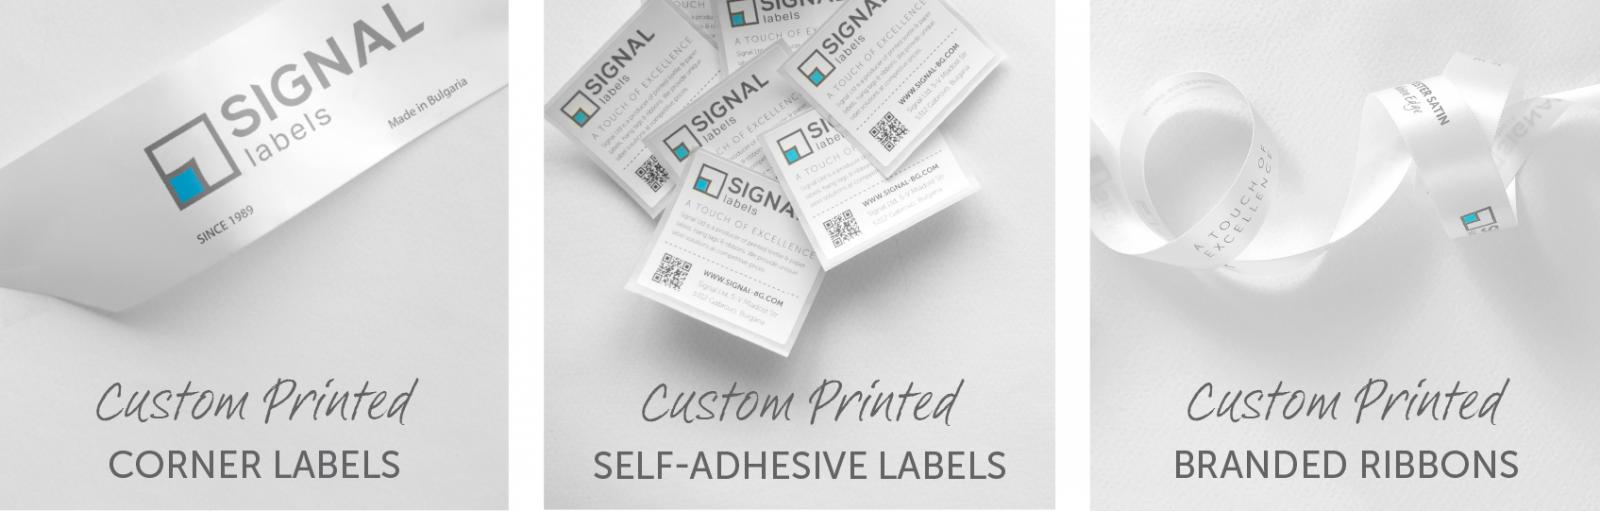 Custom Printed Fabric Labels for Home Textiles